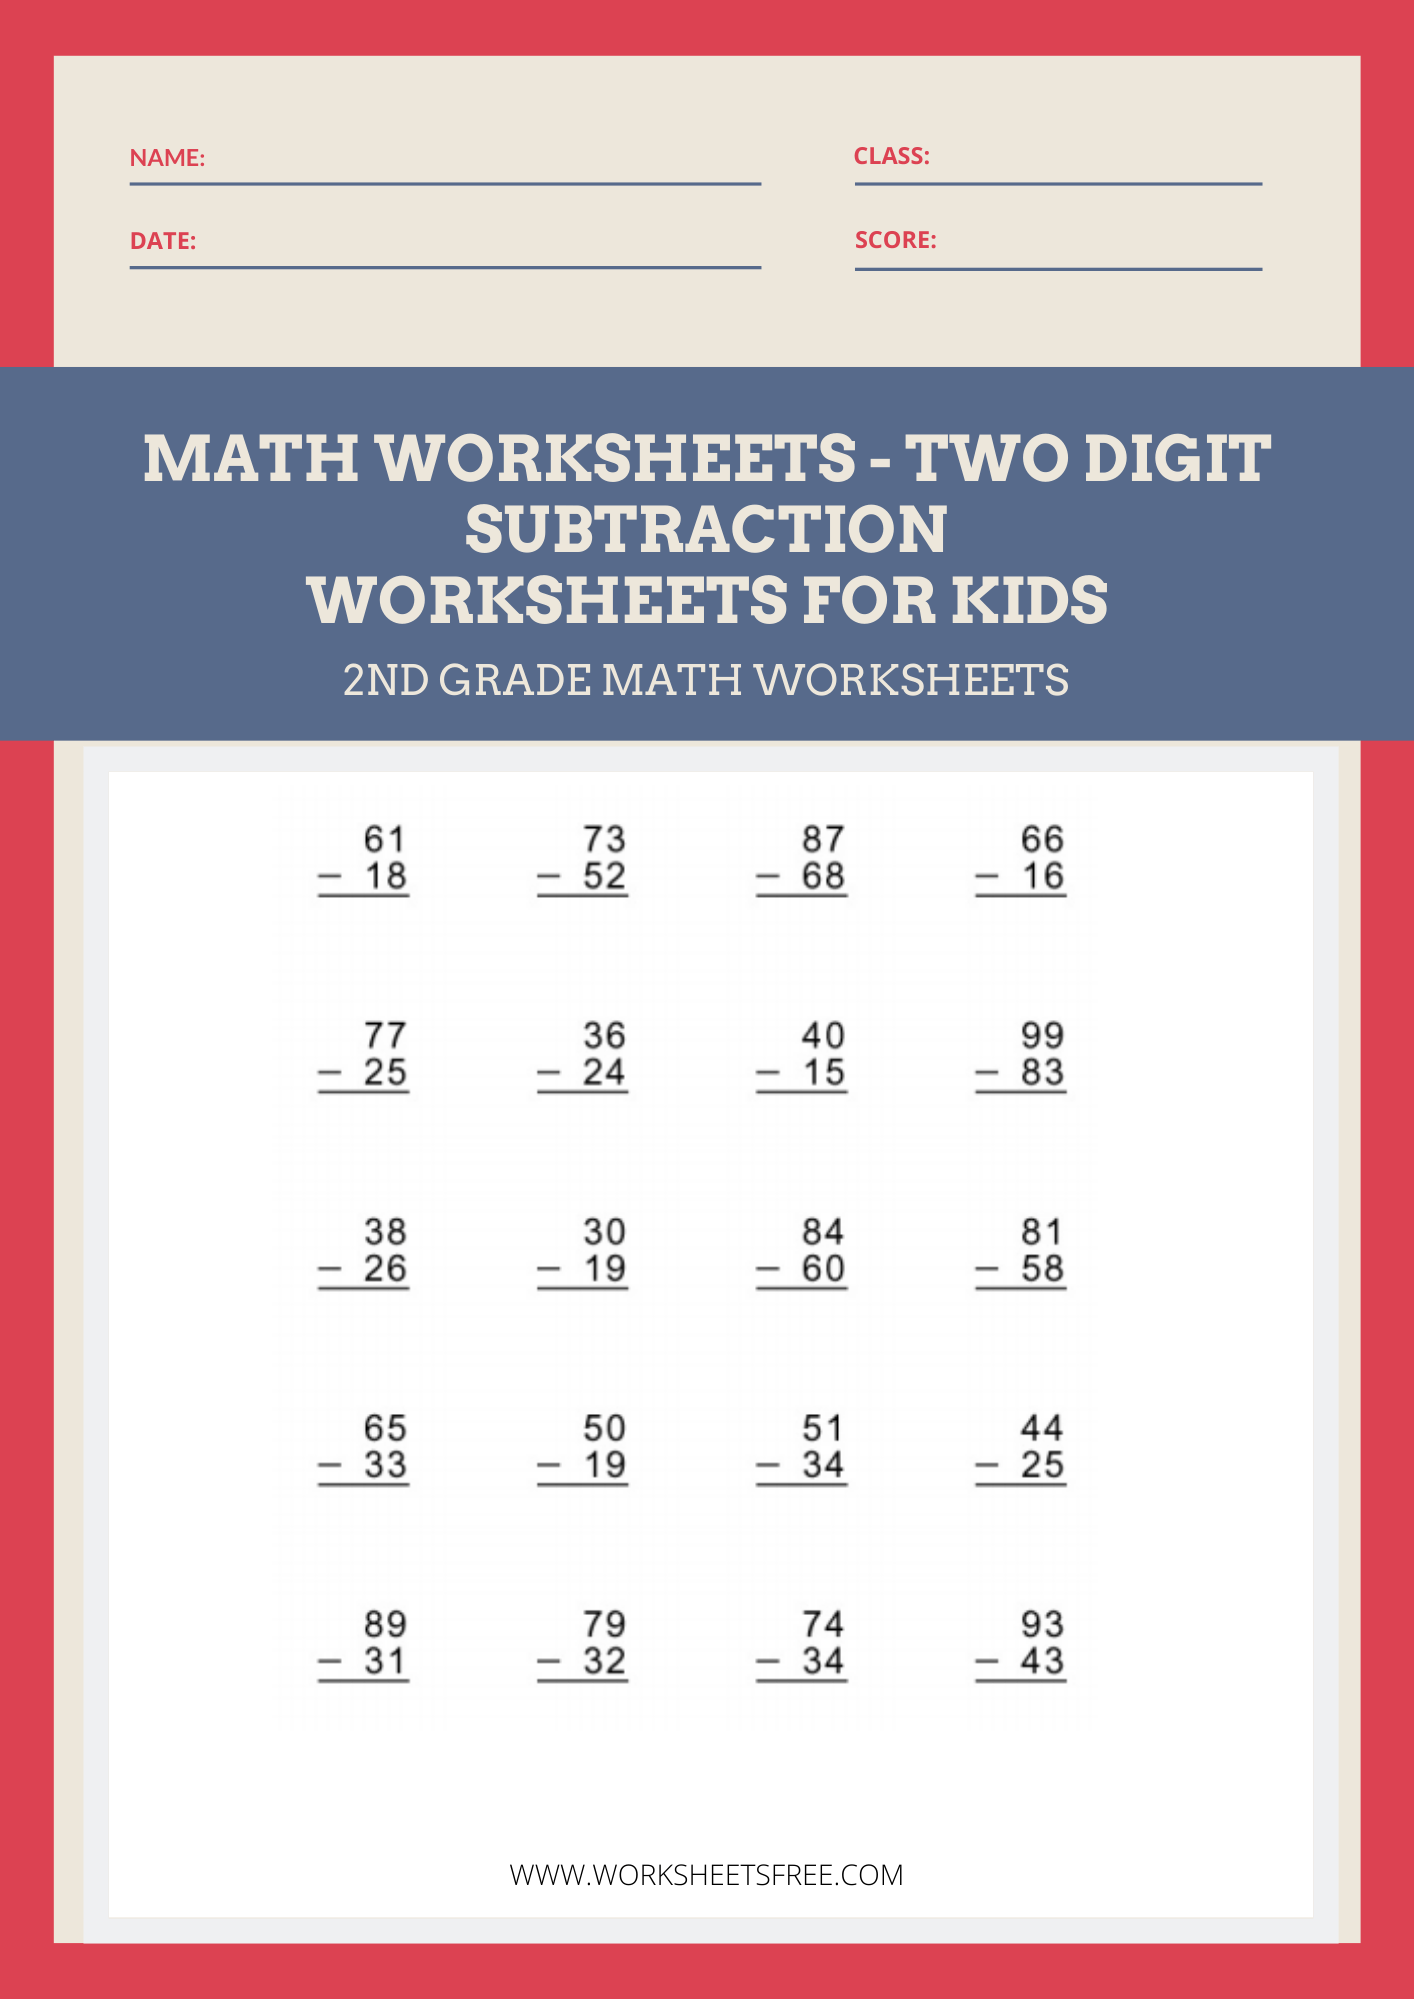 Math Worksheets Two Digit Subtraction